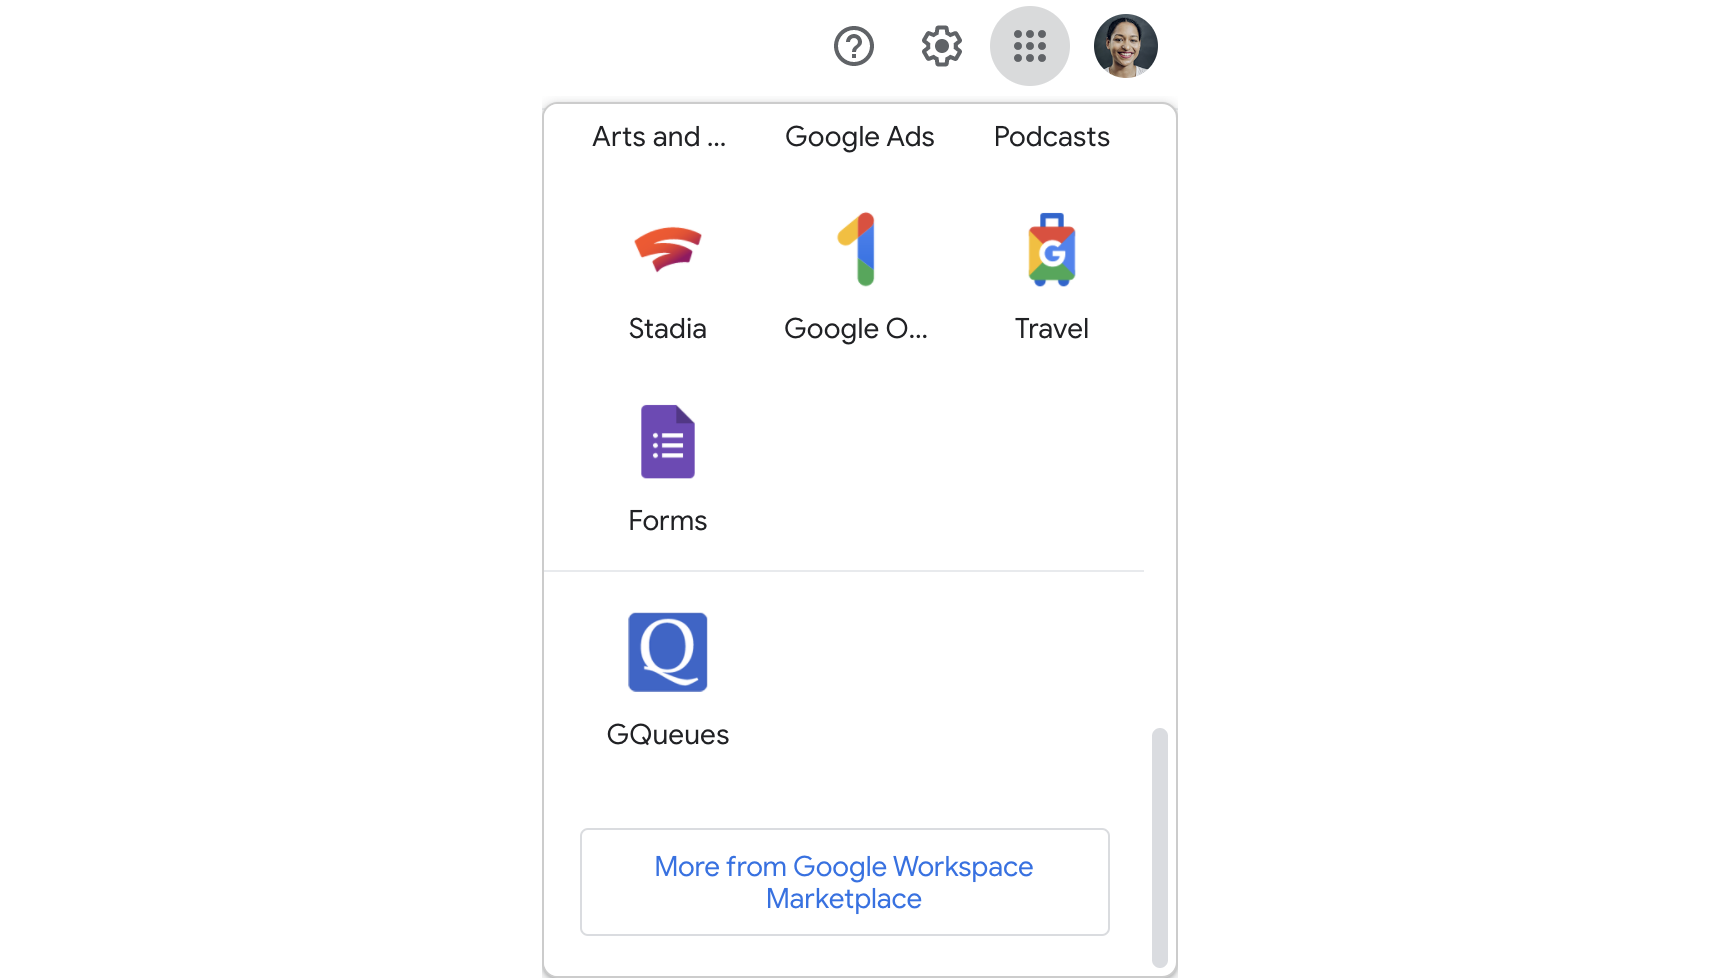 See GQueues listed alongside your other Apps